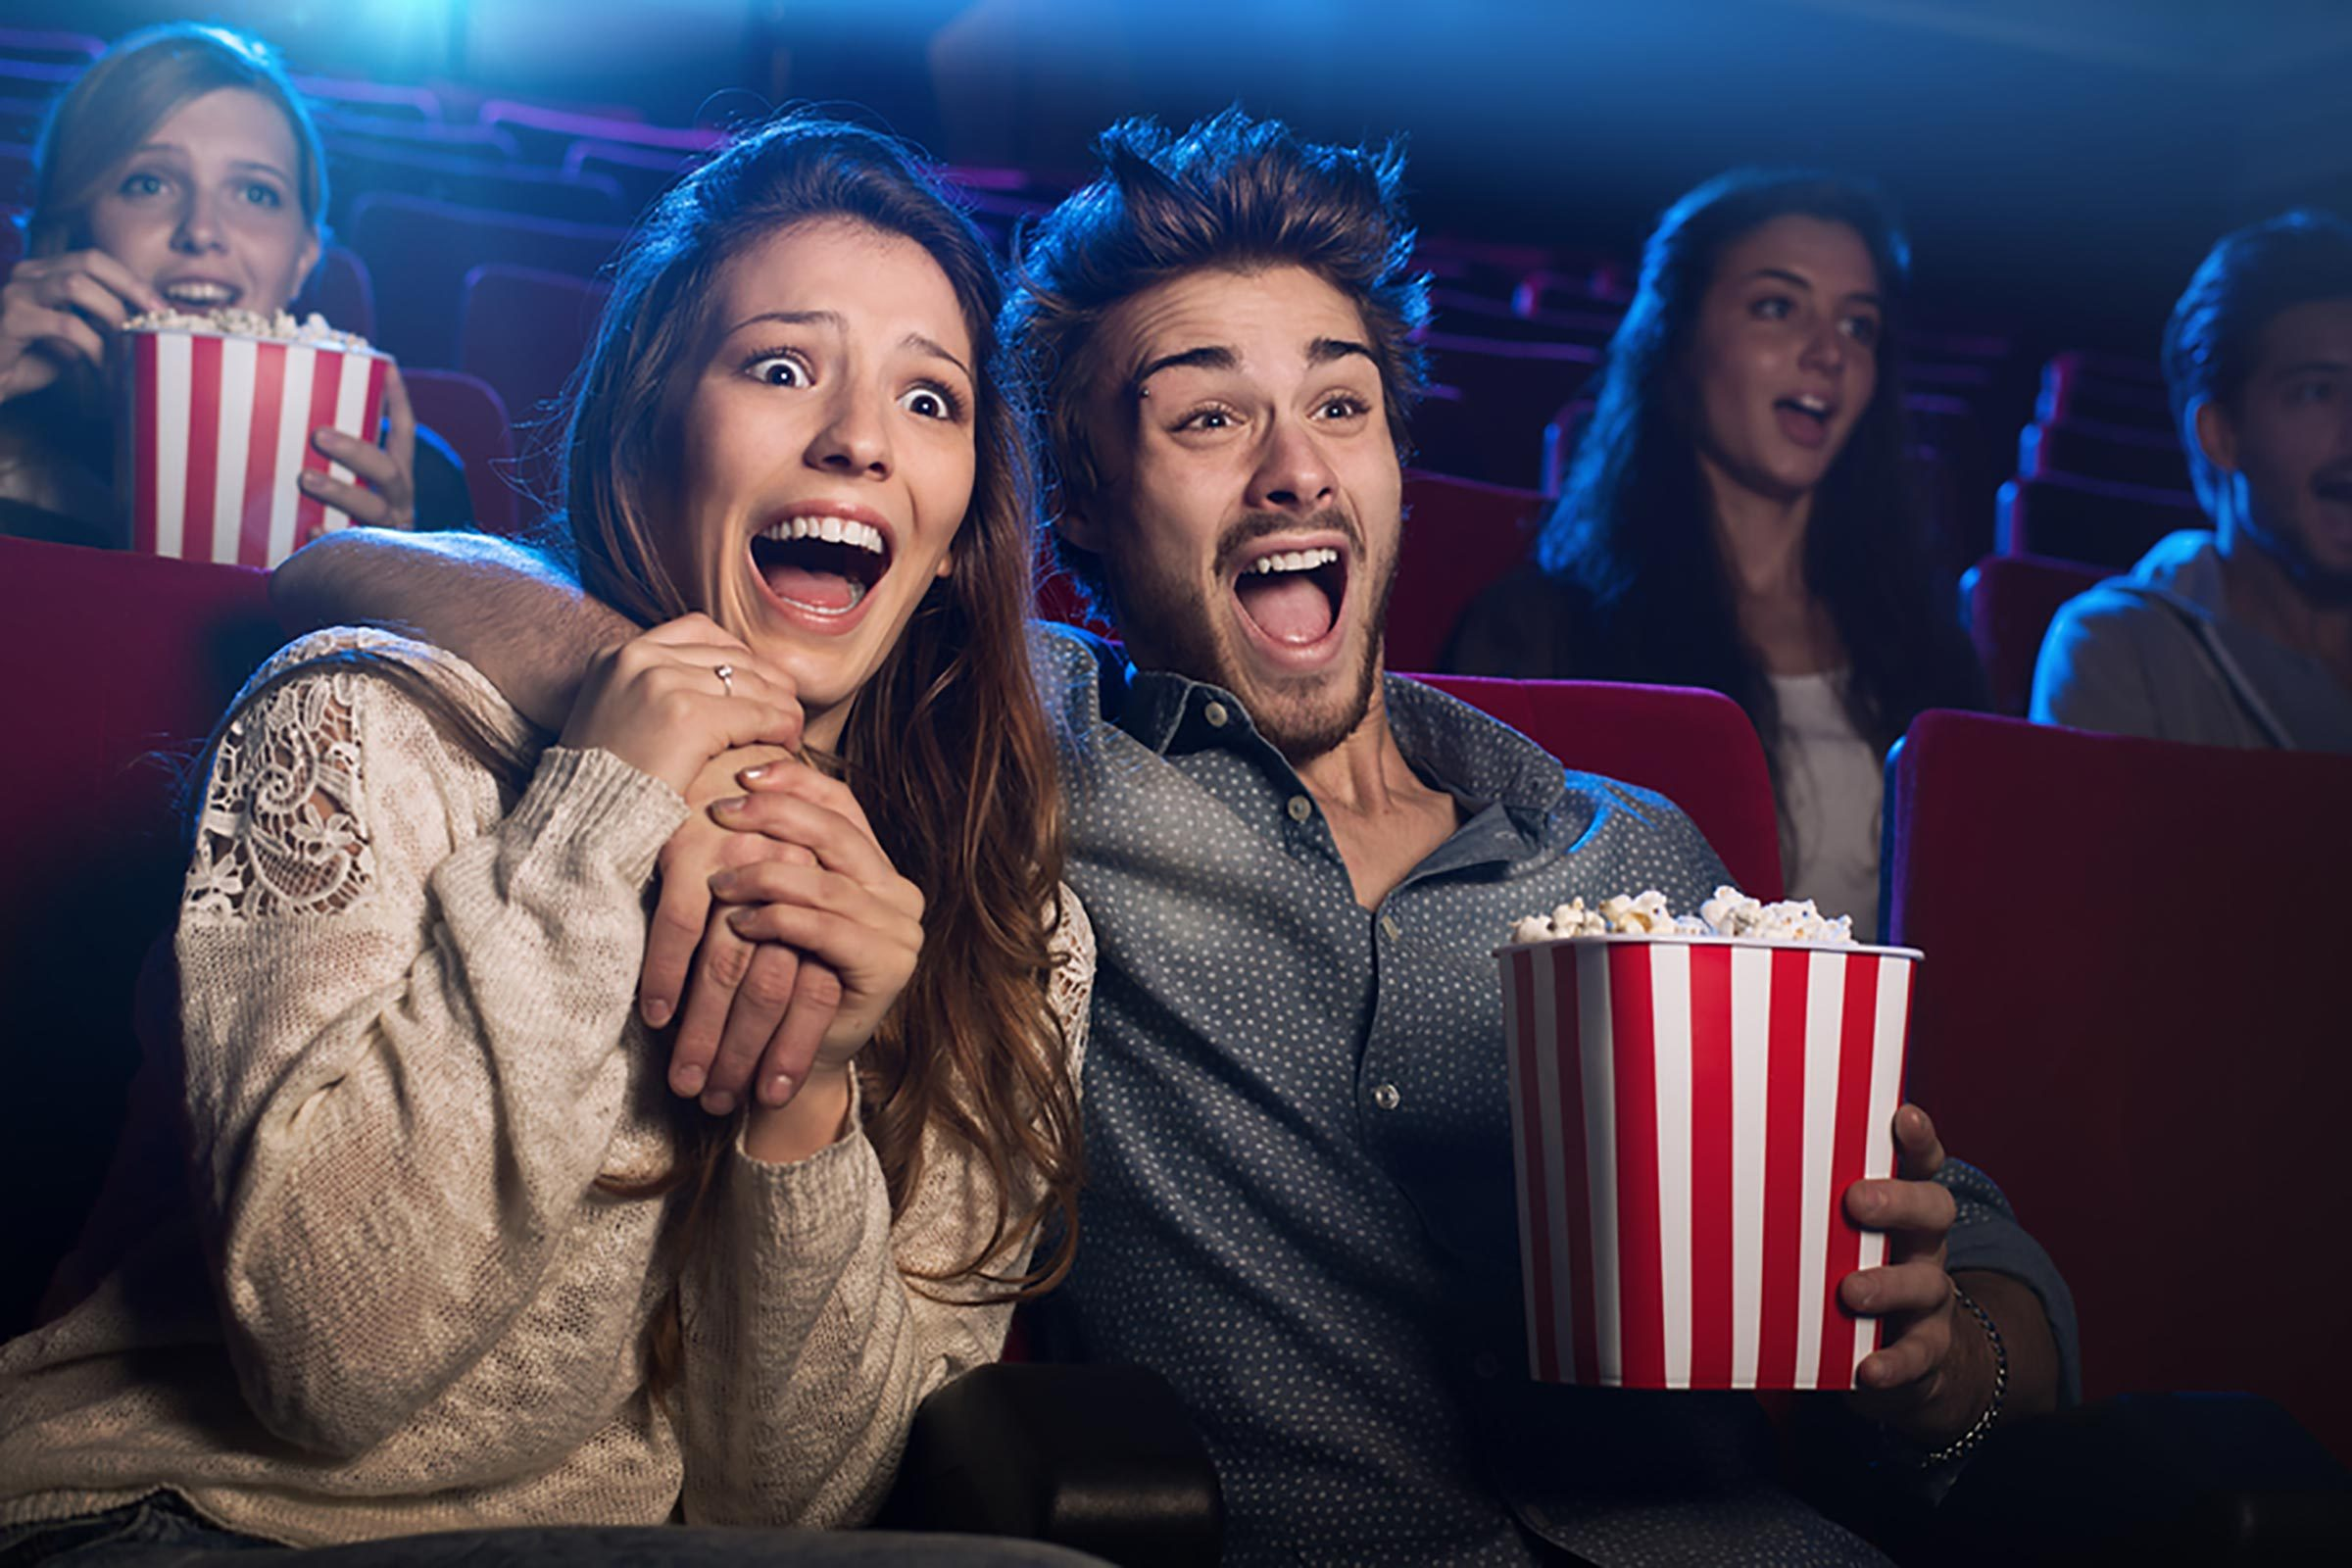 a story of five teenagers going to watch a movie Gowatchit is your comprehensive guide to finding movies and tv shows on the platforms you care about - in theaters, online, on tv, or on blu-ray/dvd use gowatchit to discover, consume, or bookmark everything you want to watch.